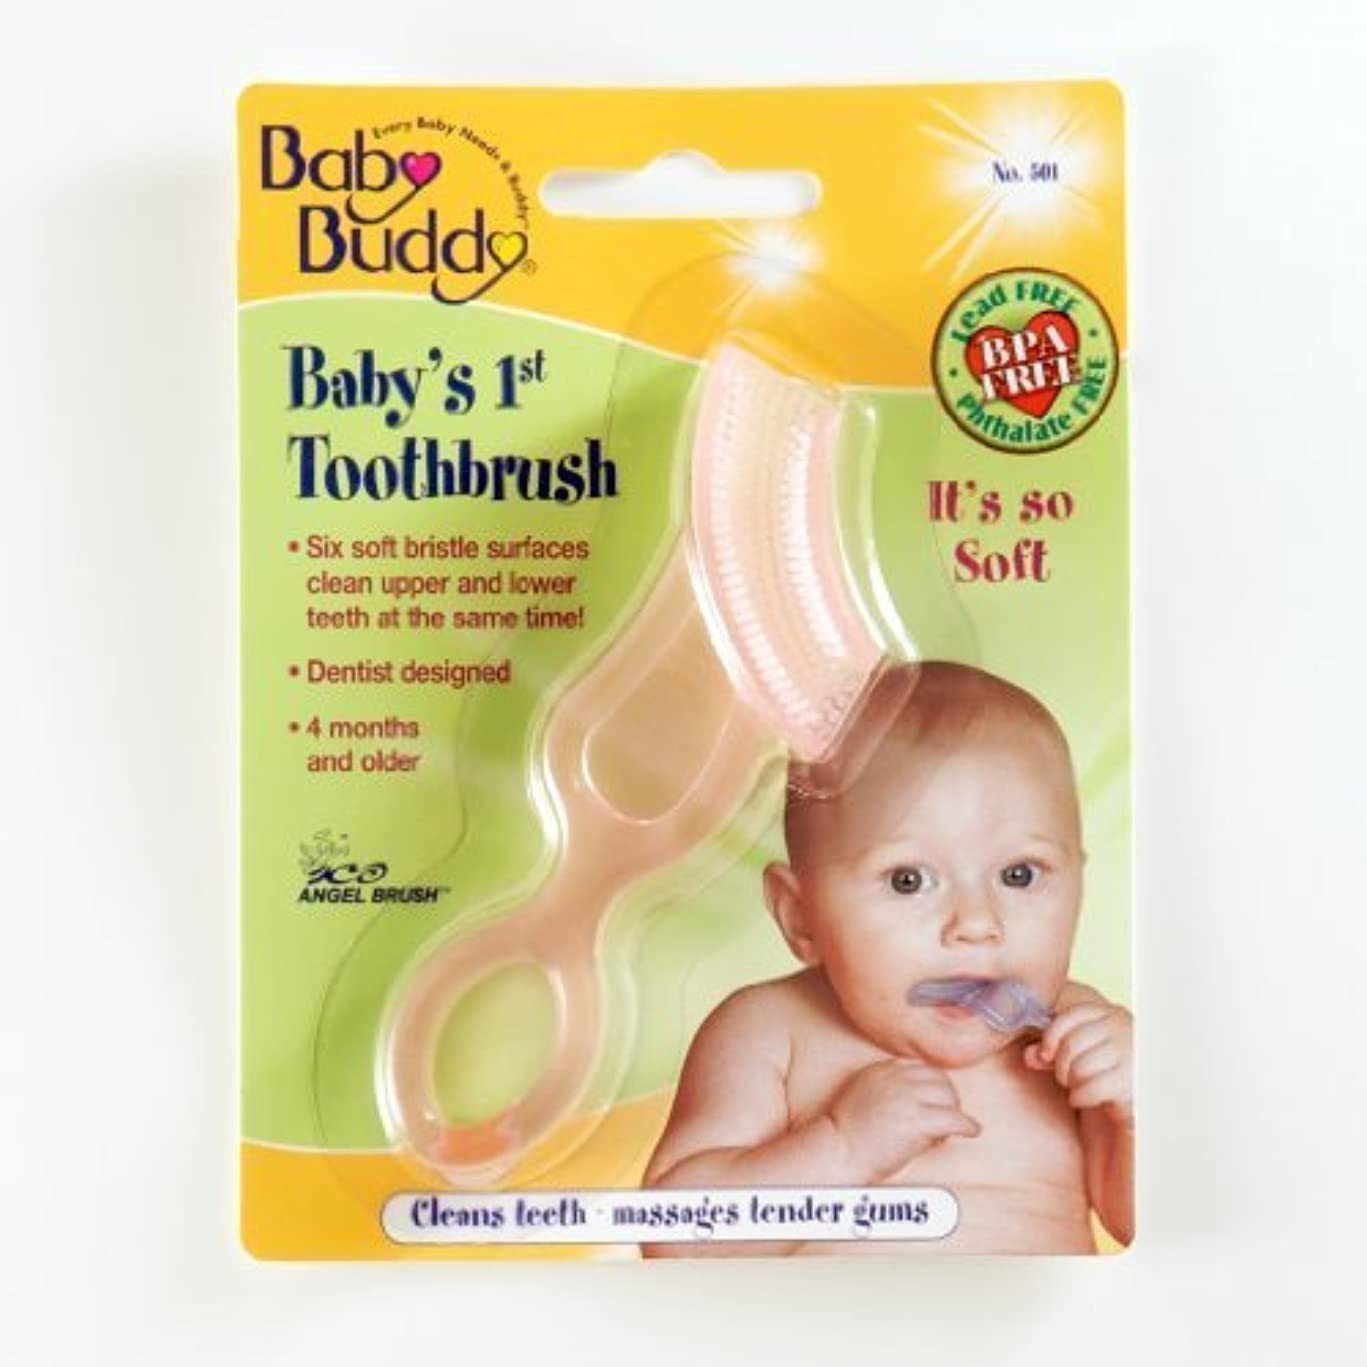 飢え抵抗する散歩Baby Buddy: Baby's 1st Toothbrush by Baby Buddy [並行輸入品]